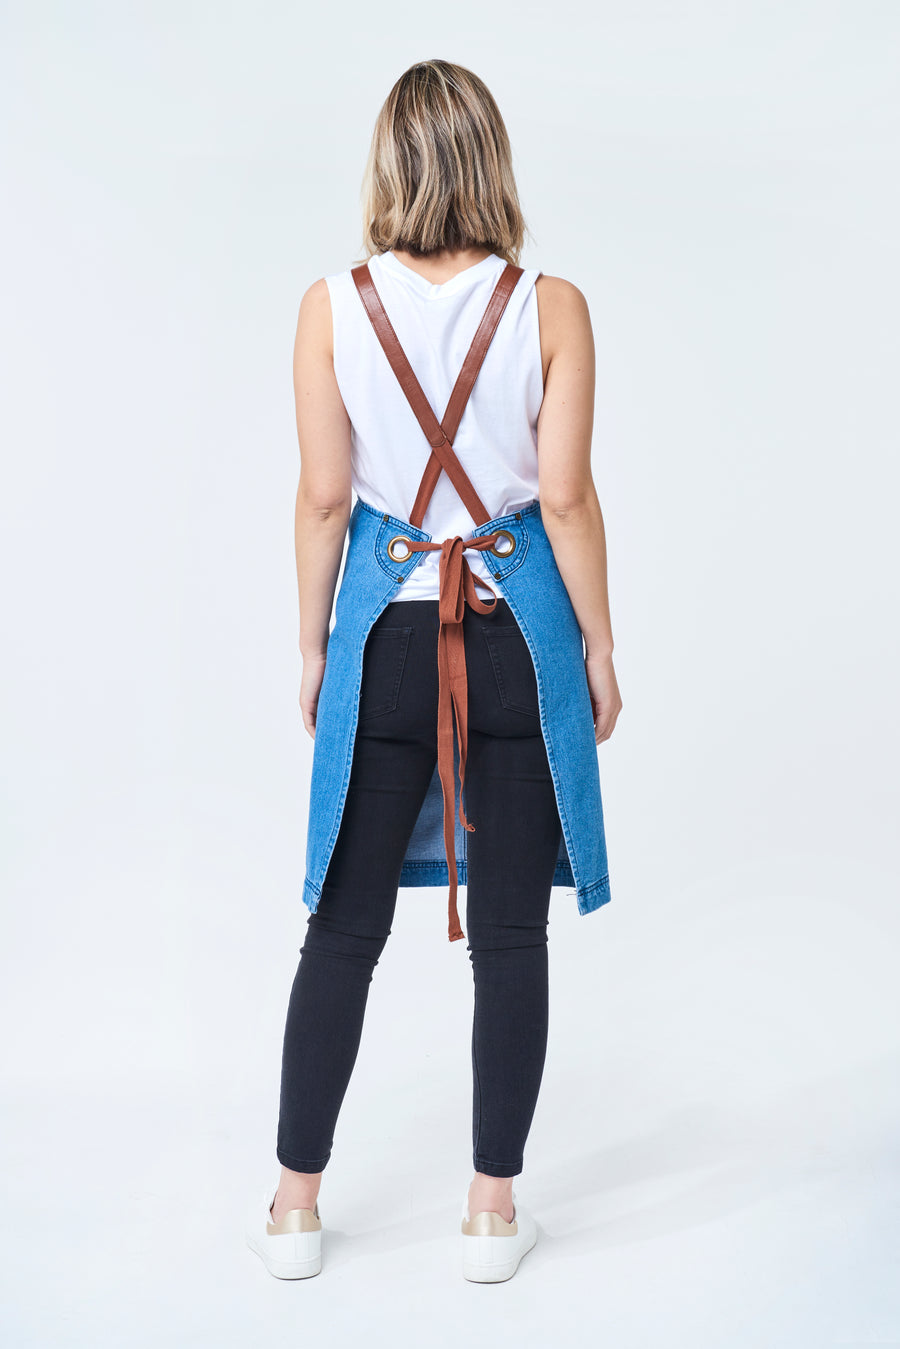 BERMUDA Apron with PU Leather Straps - Vintage Blue Denim